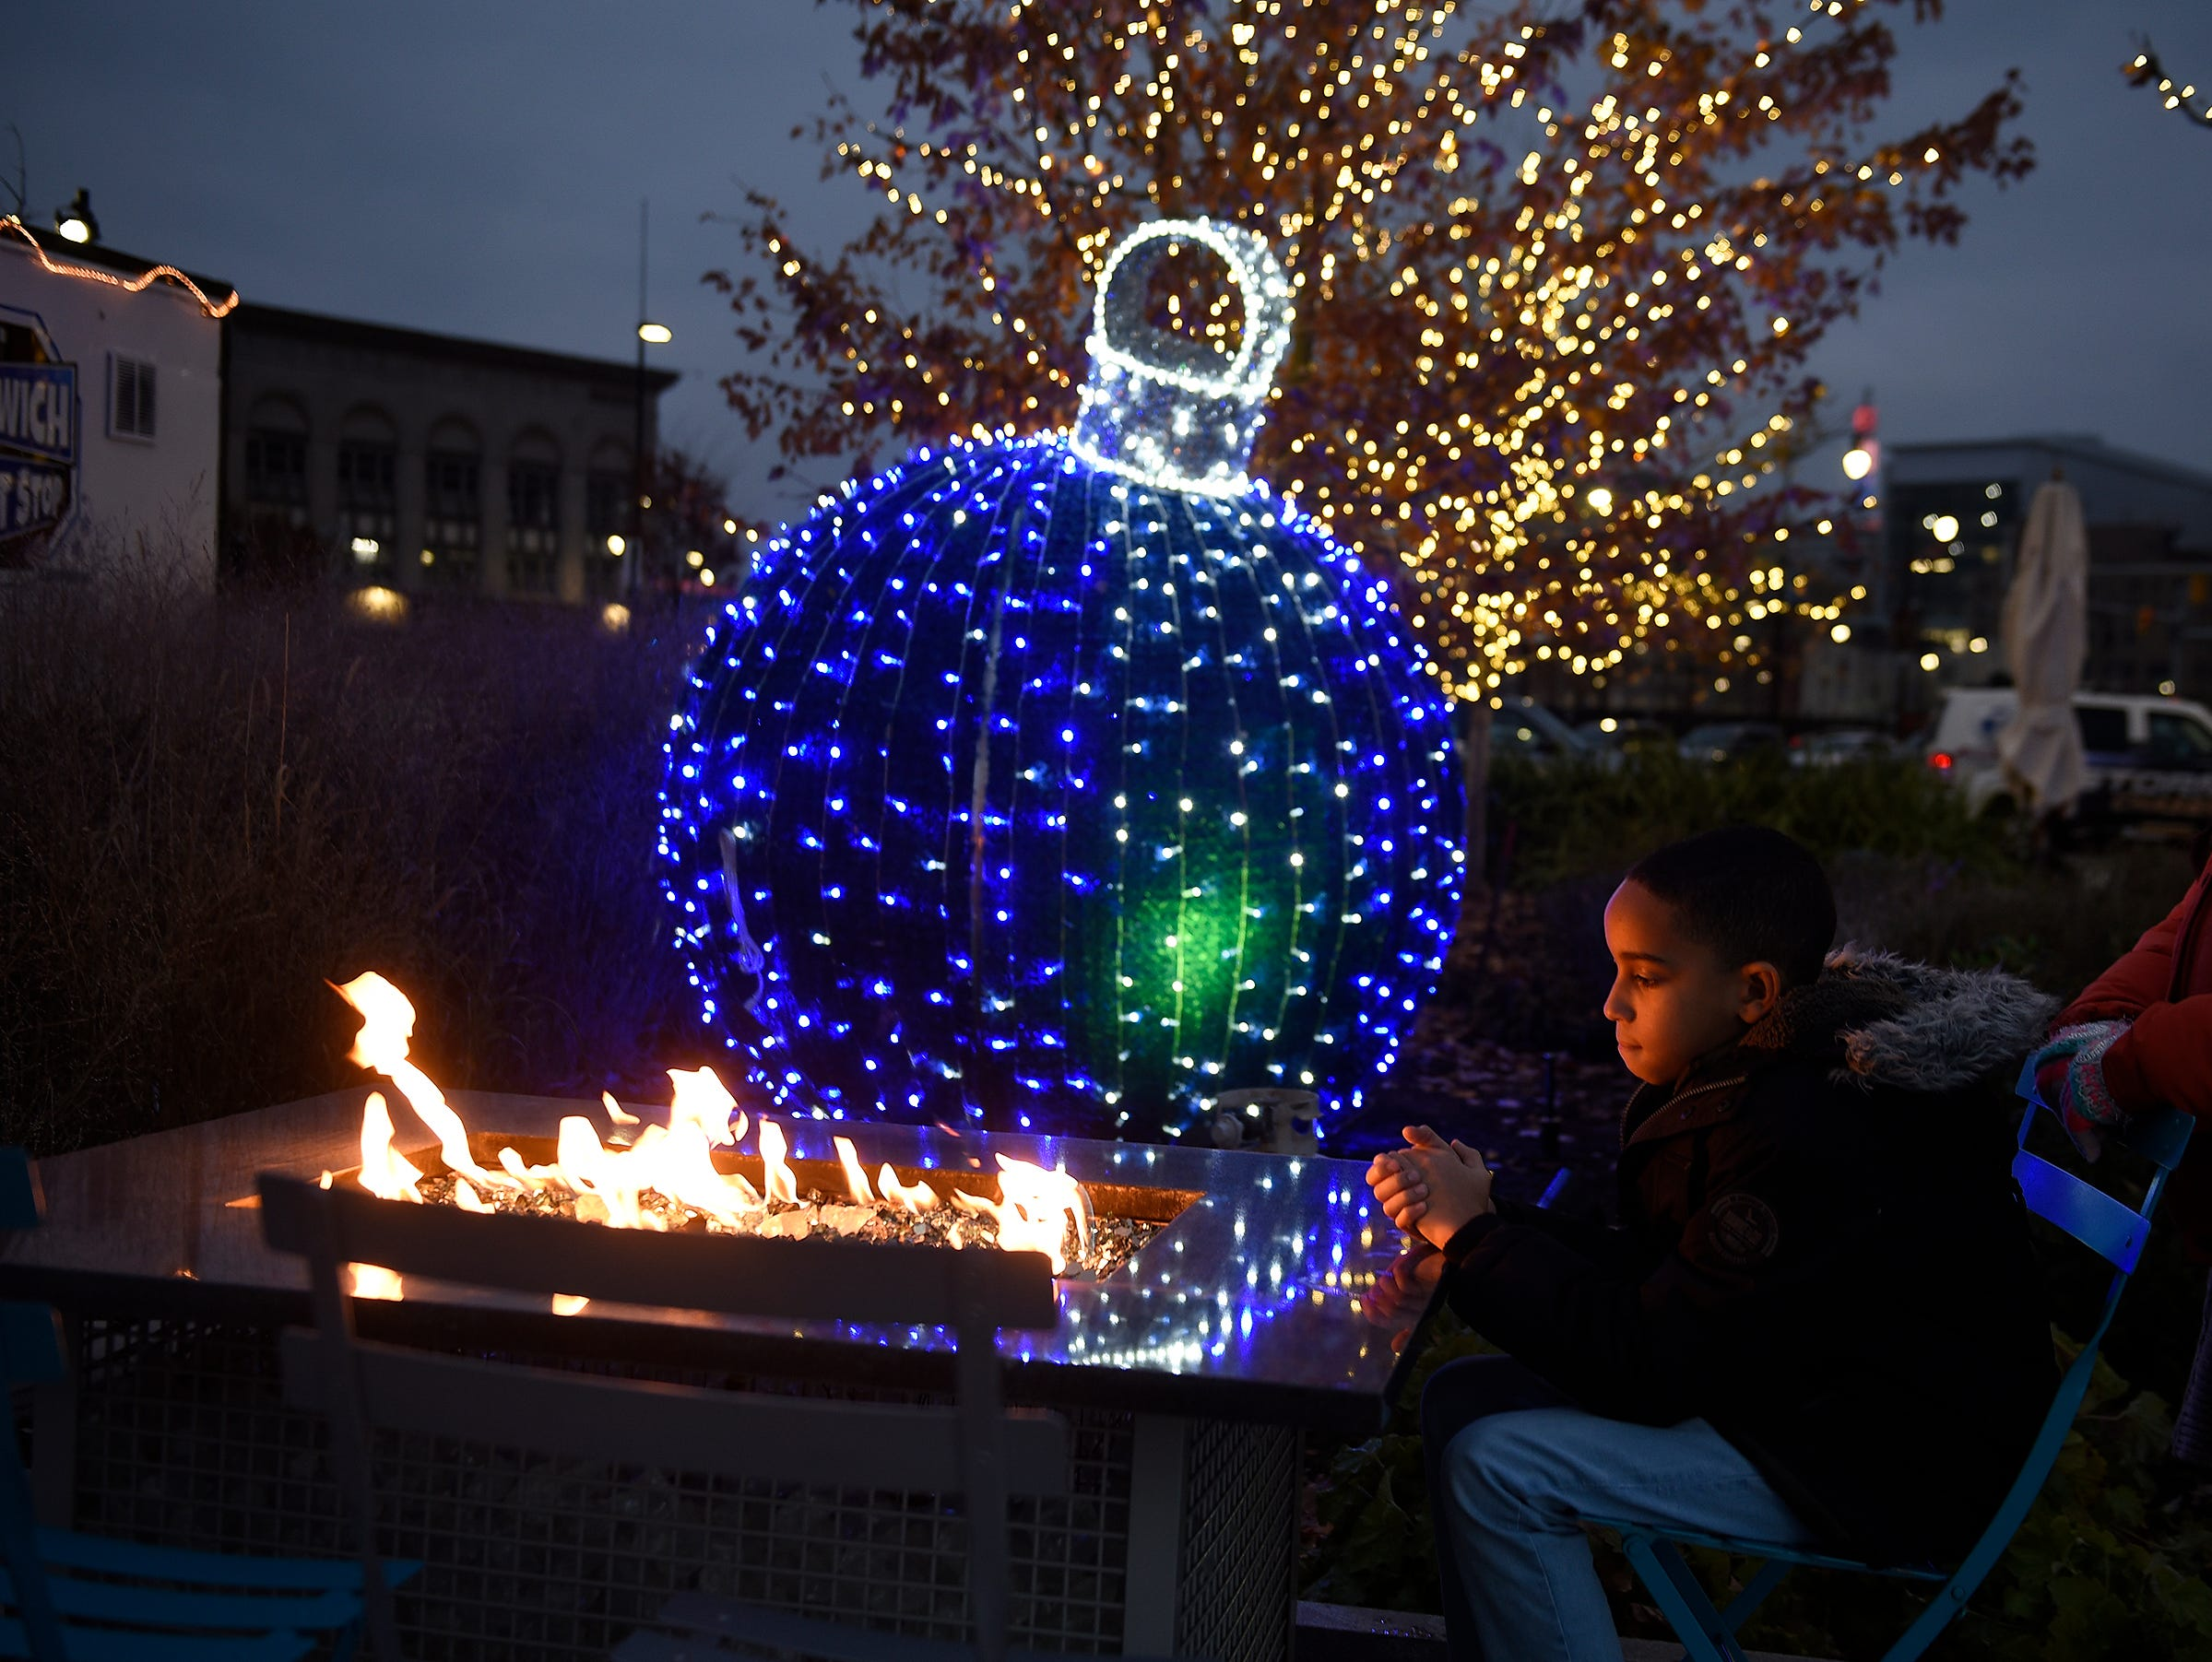 Aiden Black, 9, of Taylor warms his hands near the open fire pit at Beacon Park.